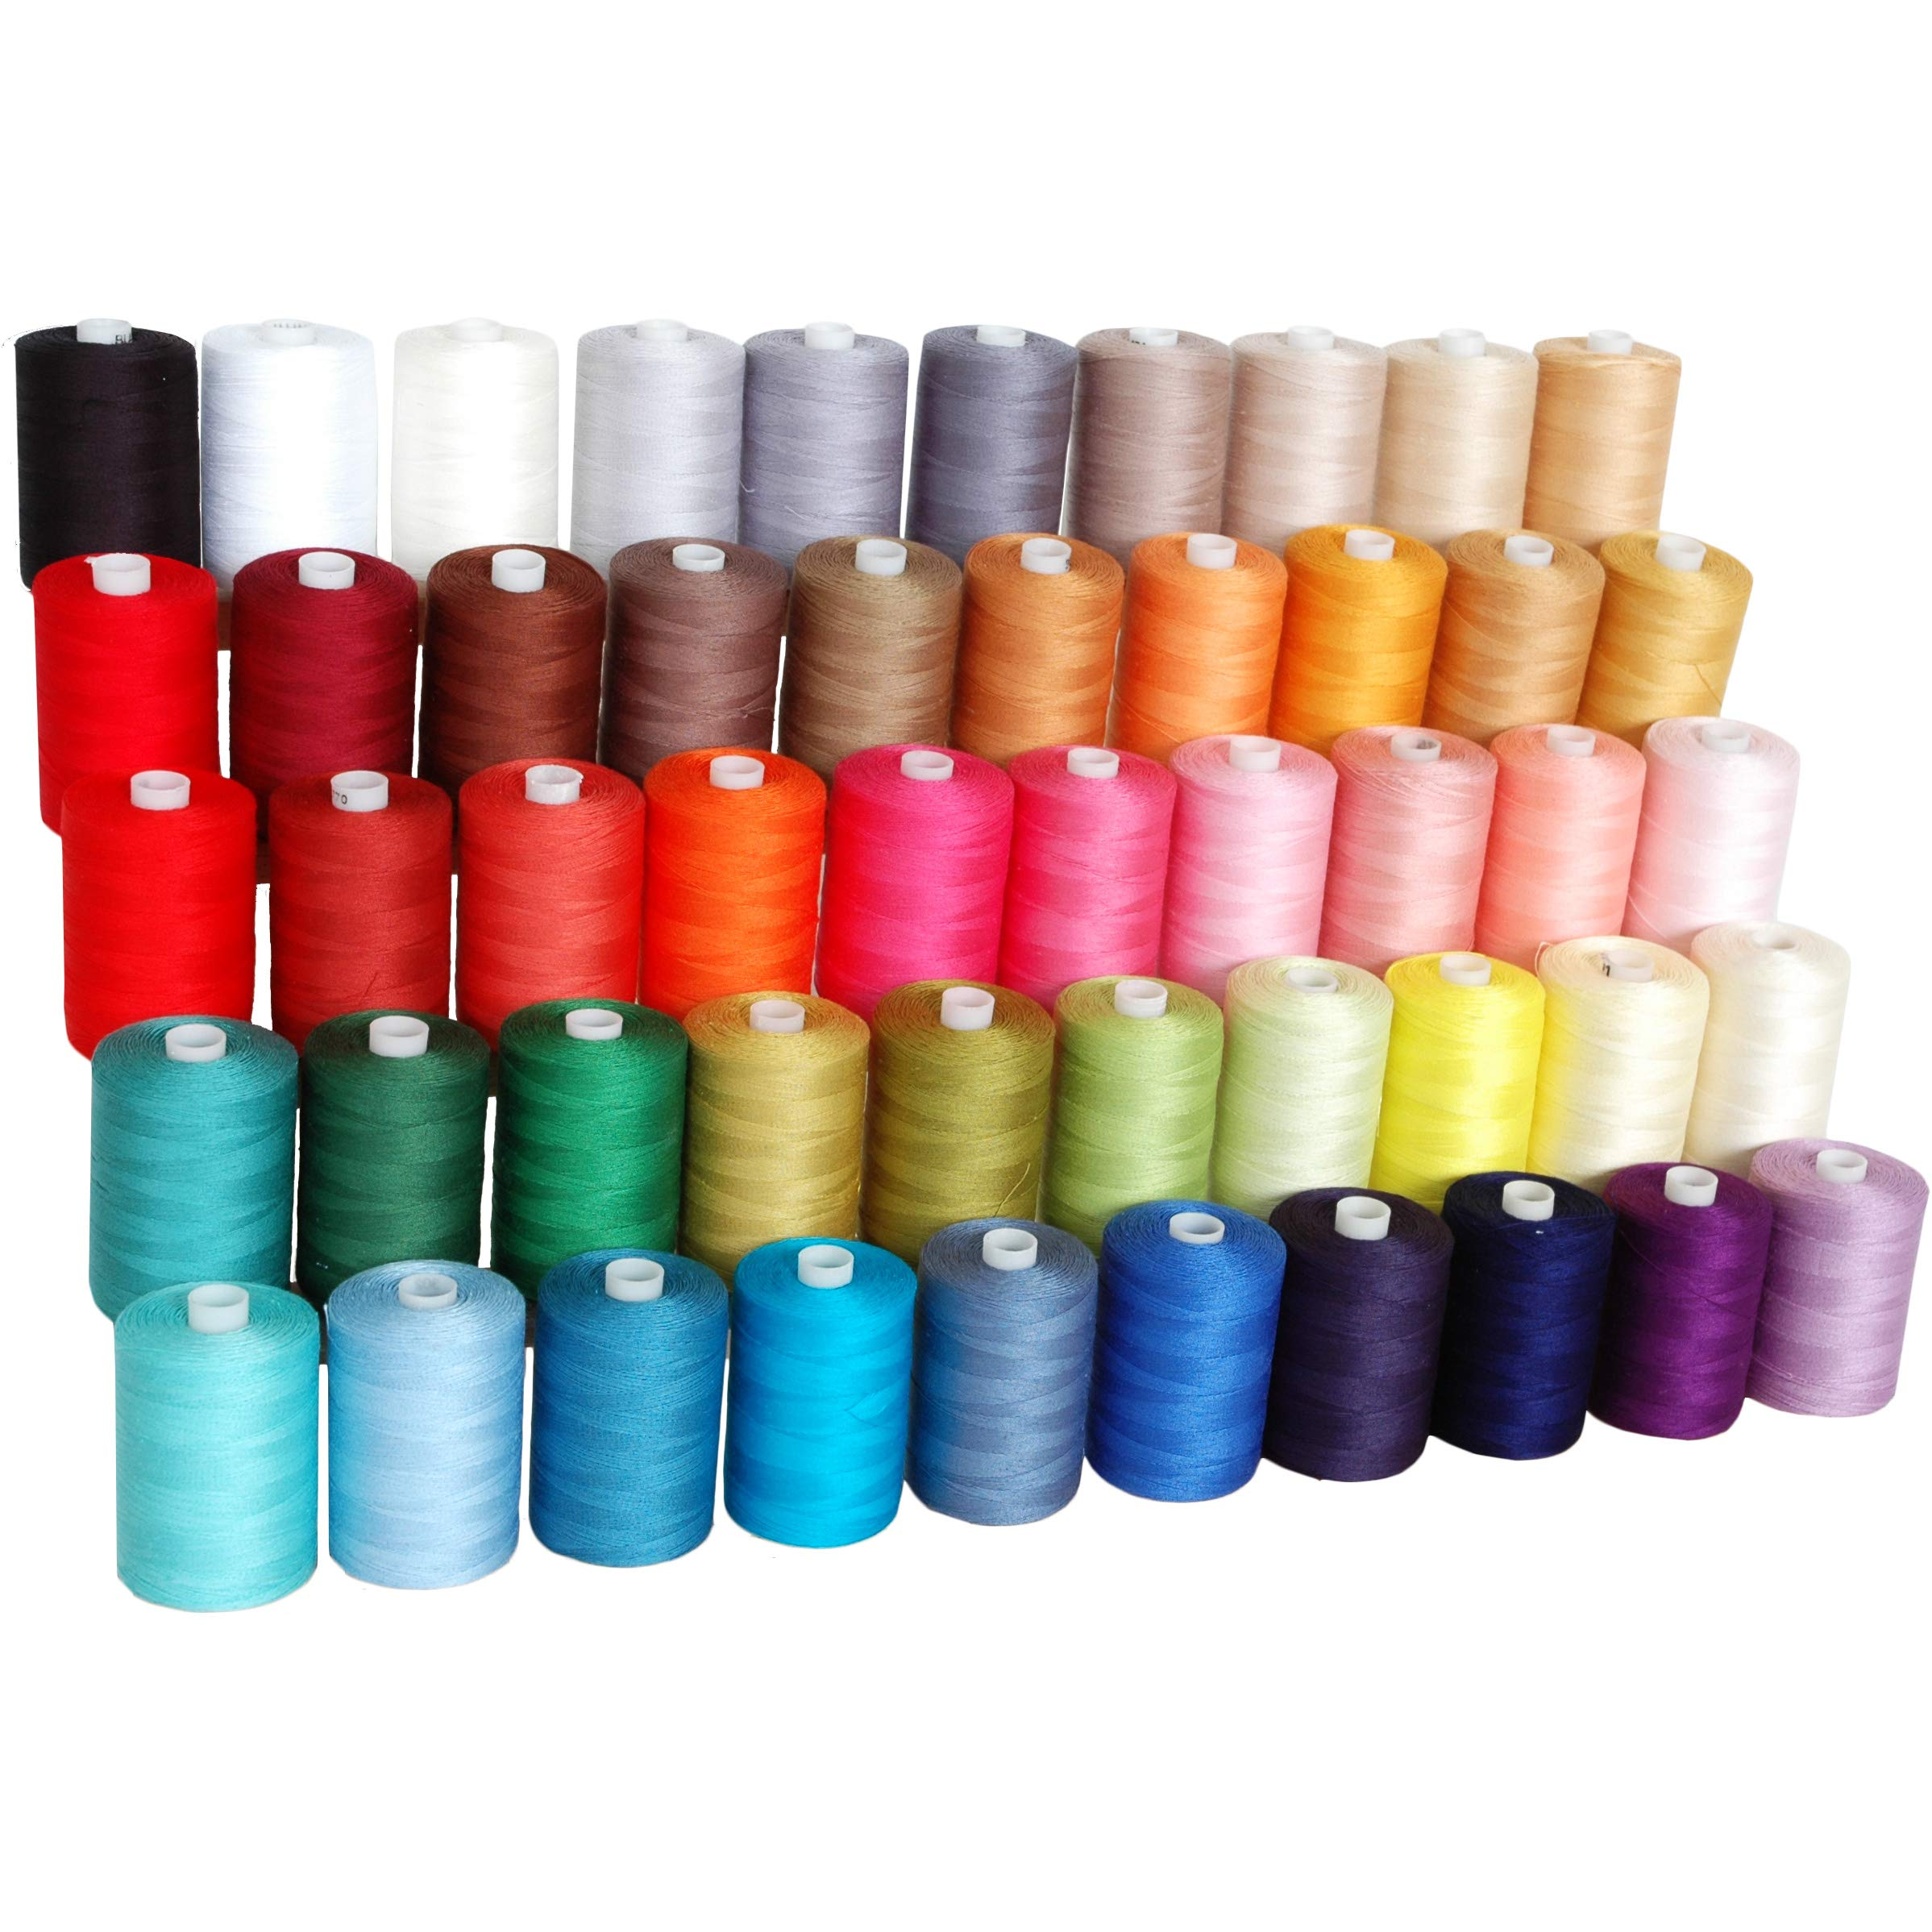 Threadart 100% Cotton Thread Set | 50 Colors | 1000M (1100 Yards) Spools | For Quilting & Sewing 50/3 Weight | Long Staple & Low Lint | Over 20 Other Sets Available by Threadart